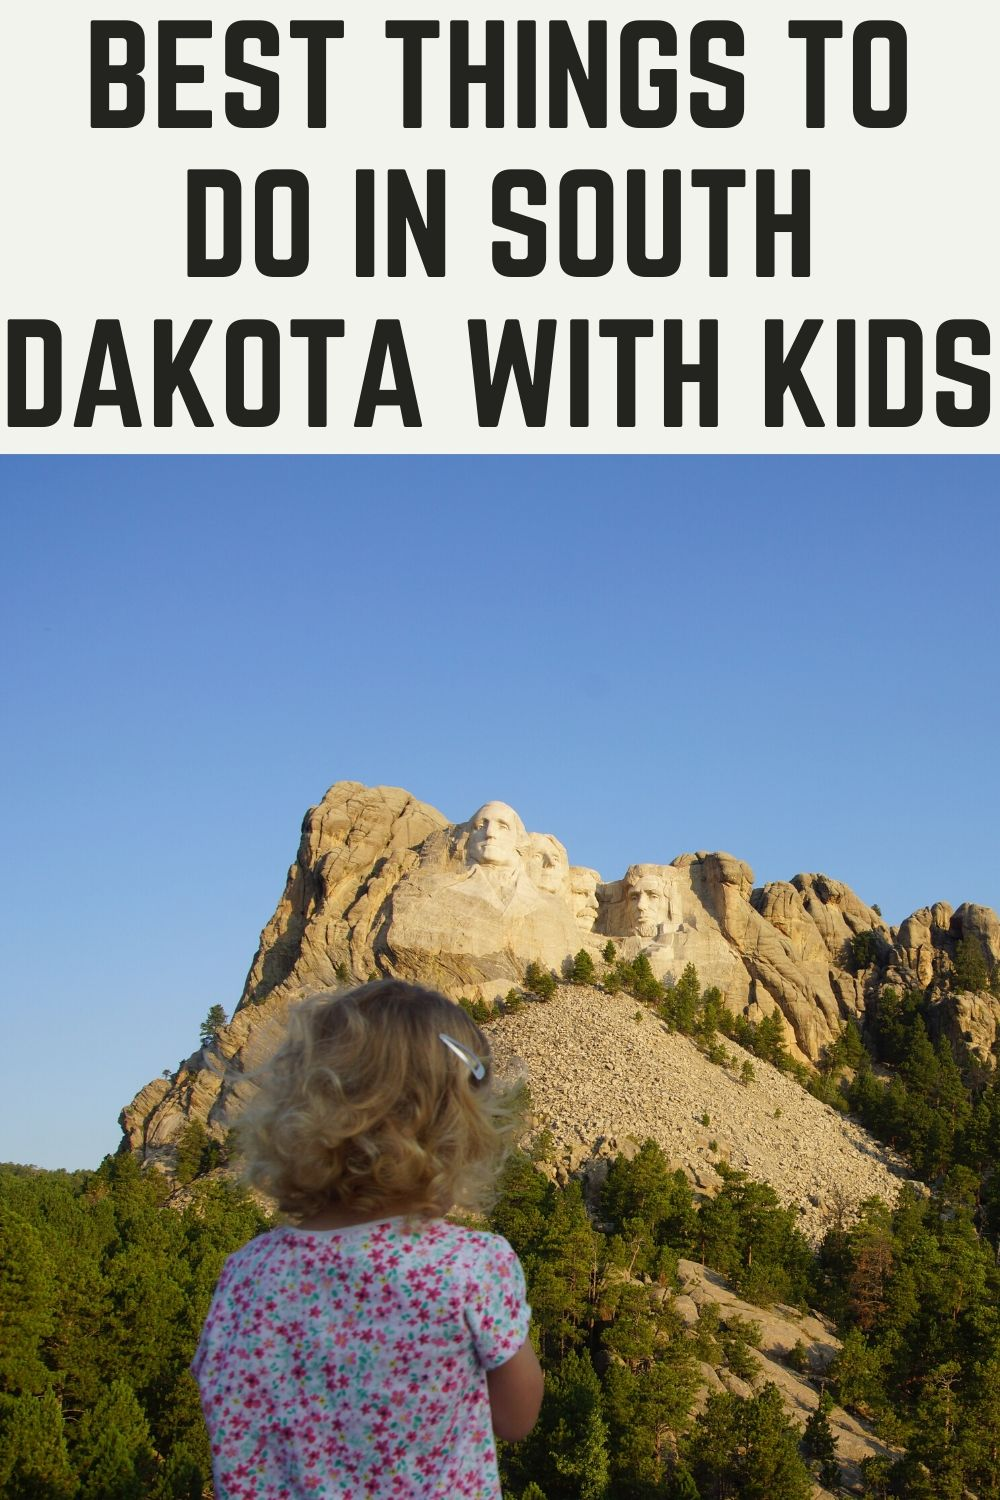 Best THings to do in South Dakota with kids / Best things to do in Rapid City with kids